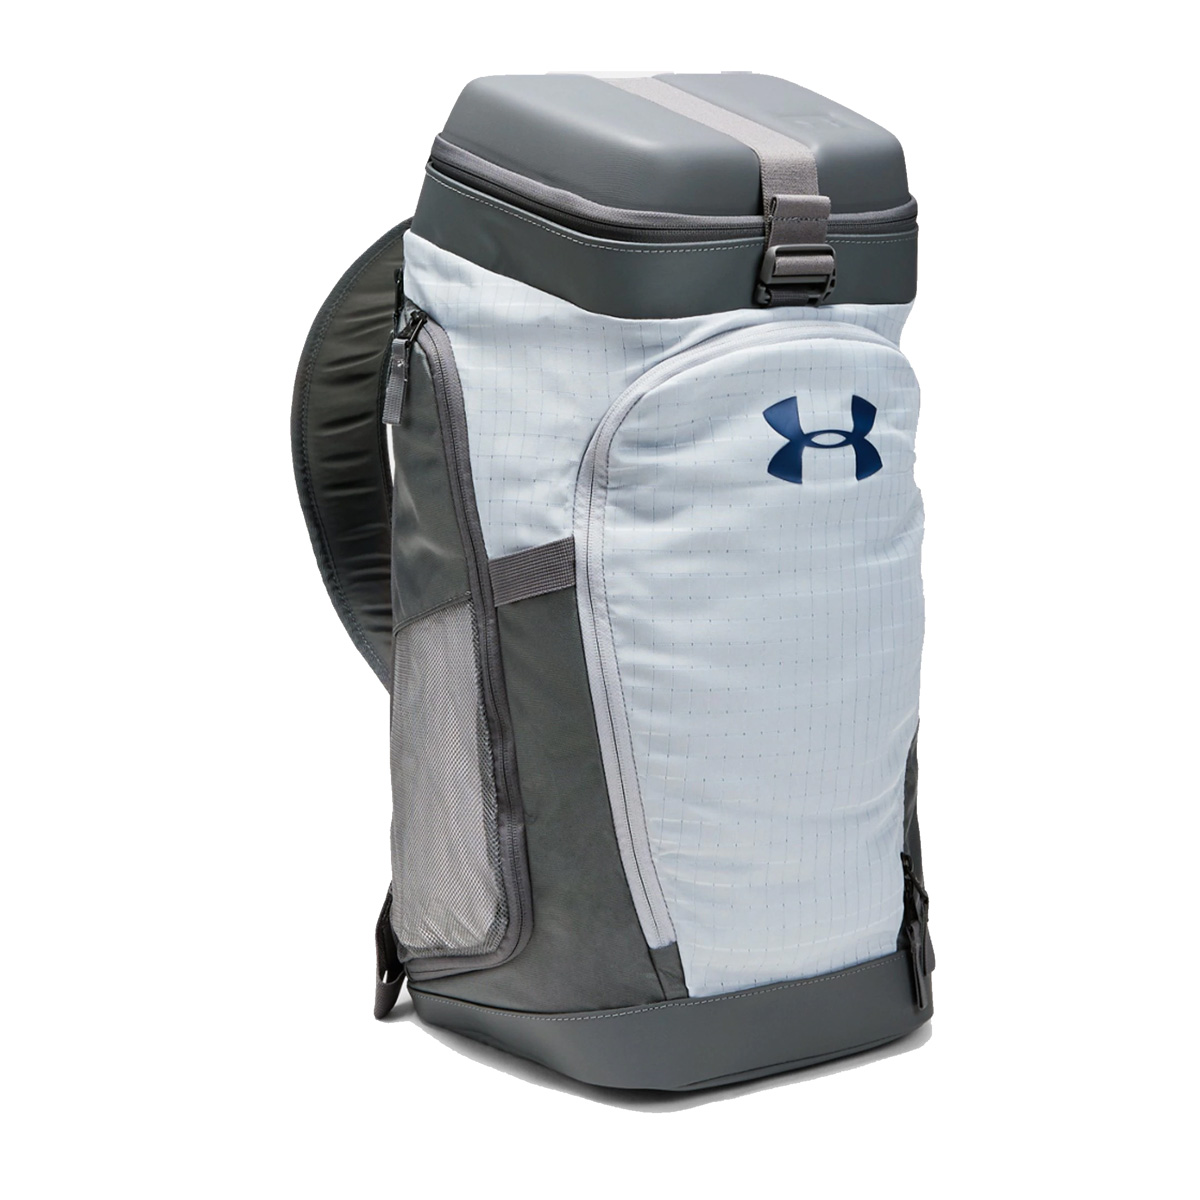 An image of Under Armour Own The Gym Duffle Bag – Mod Grey - OSFA, MOD GRAY-GRAPHITE-PETRO...